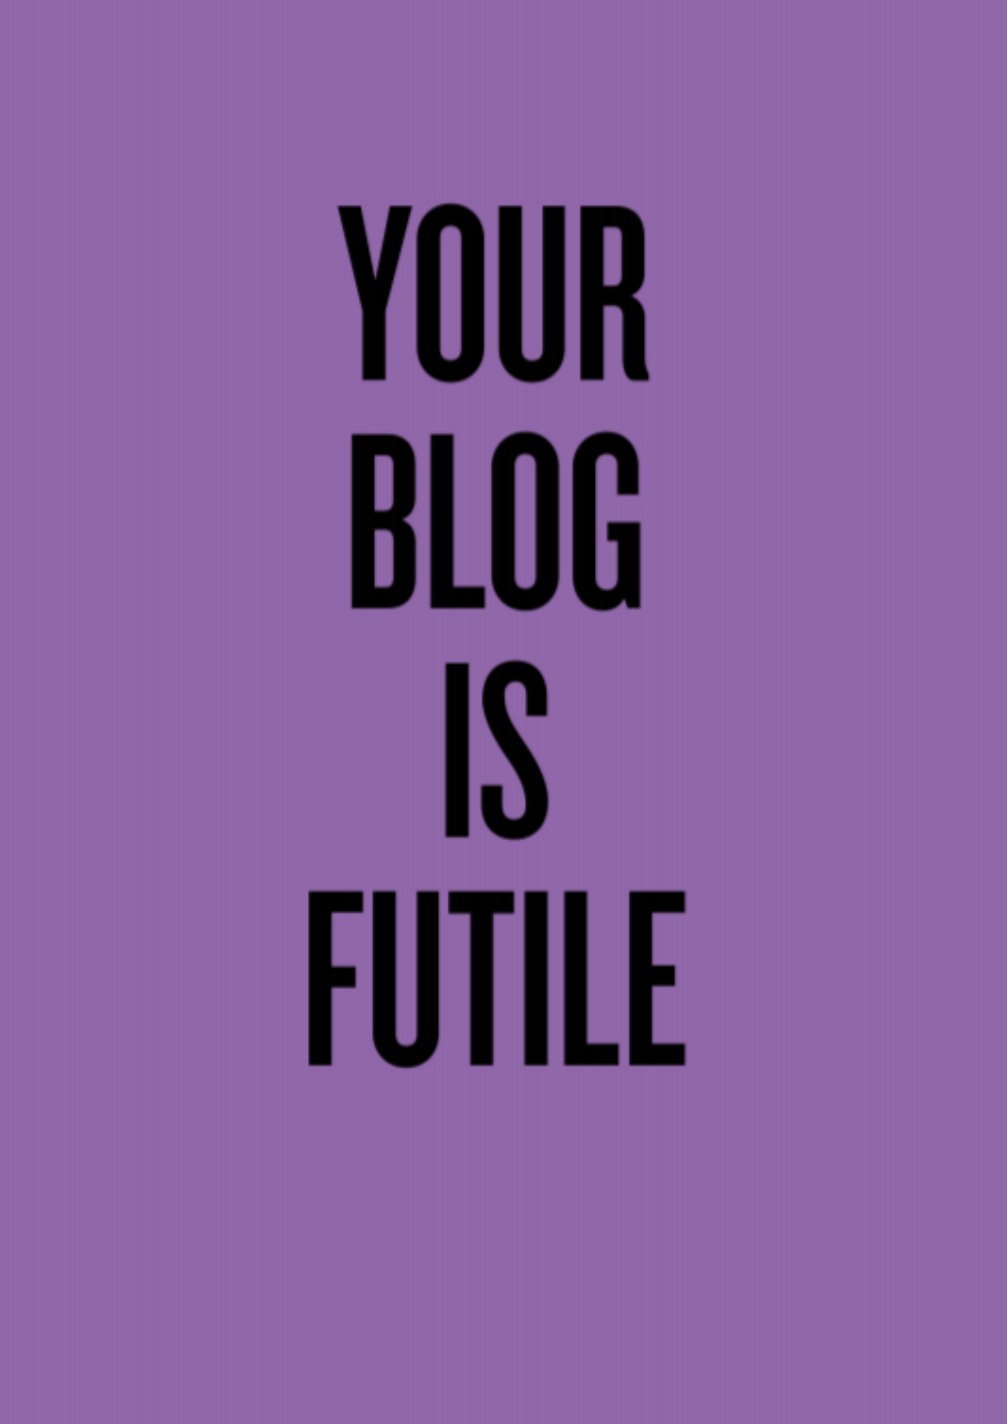 your blog is futile